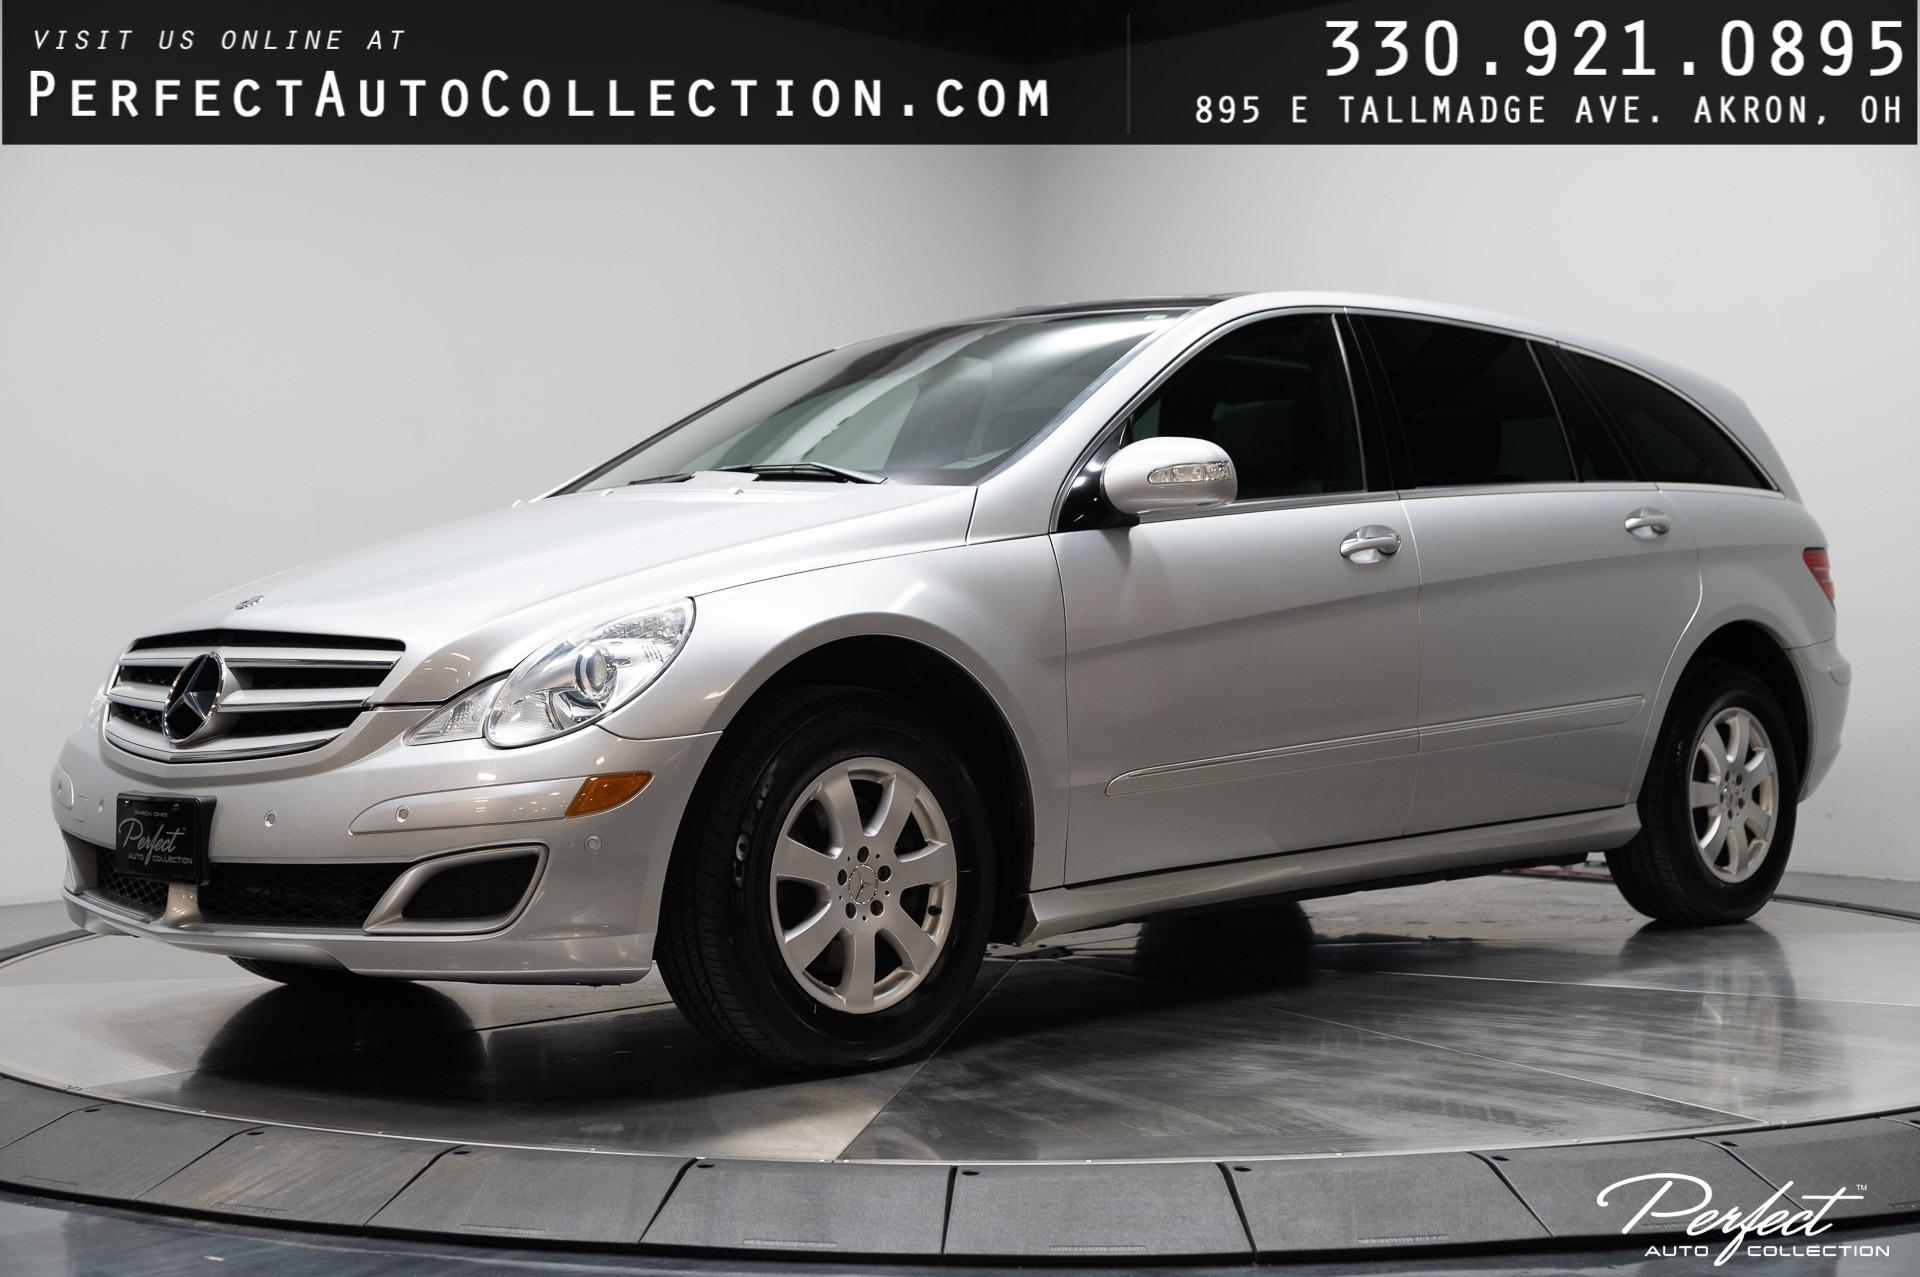 Used 2007 Mercedes-Benz R-Class R 350 for sale $7,895 at Perfect Auto Collection in Akron OH 44310 1